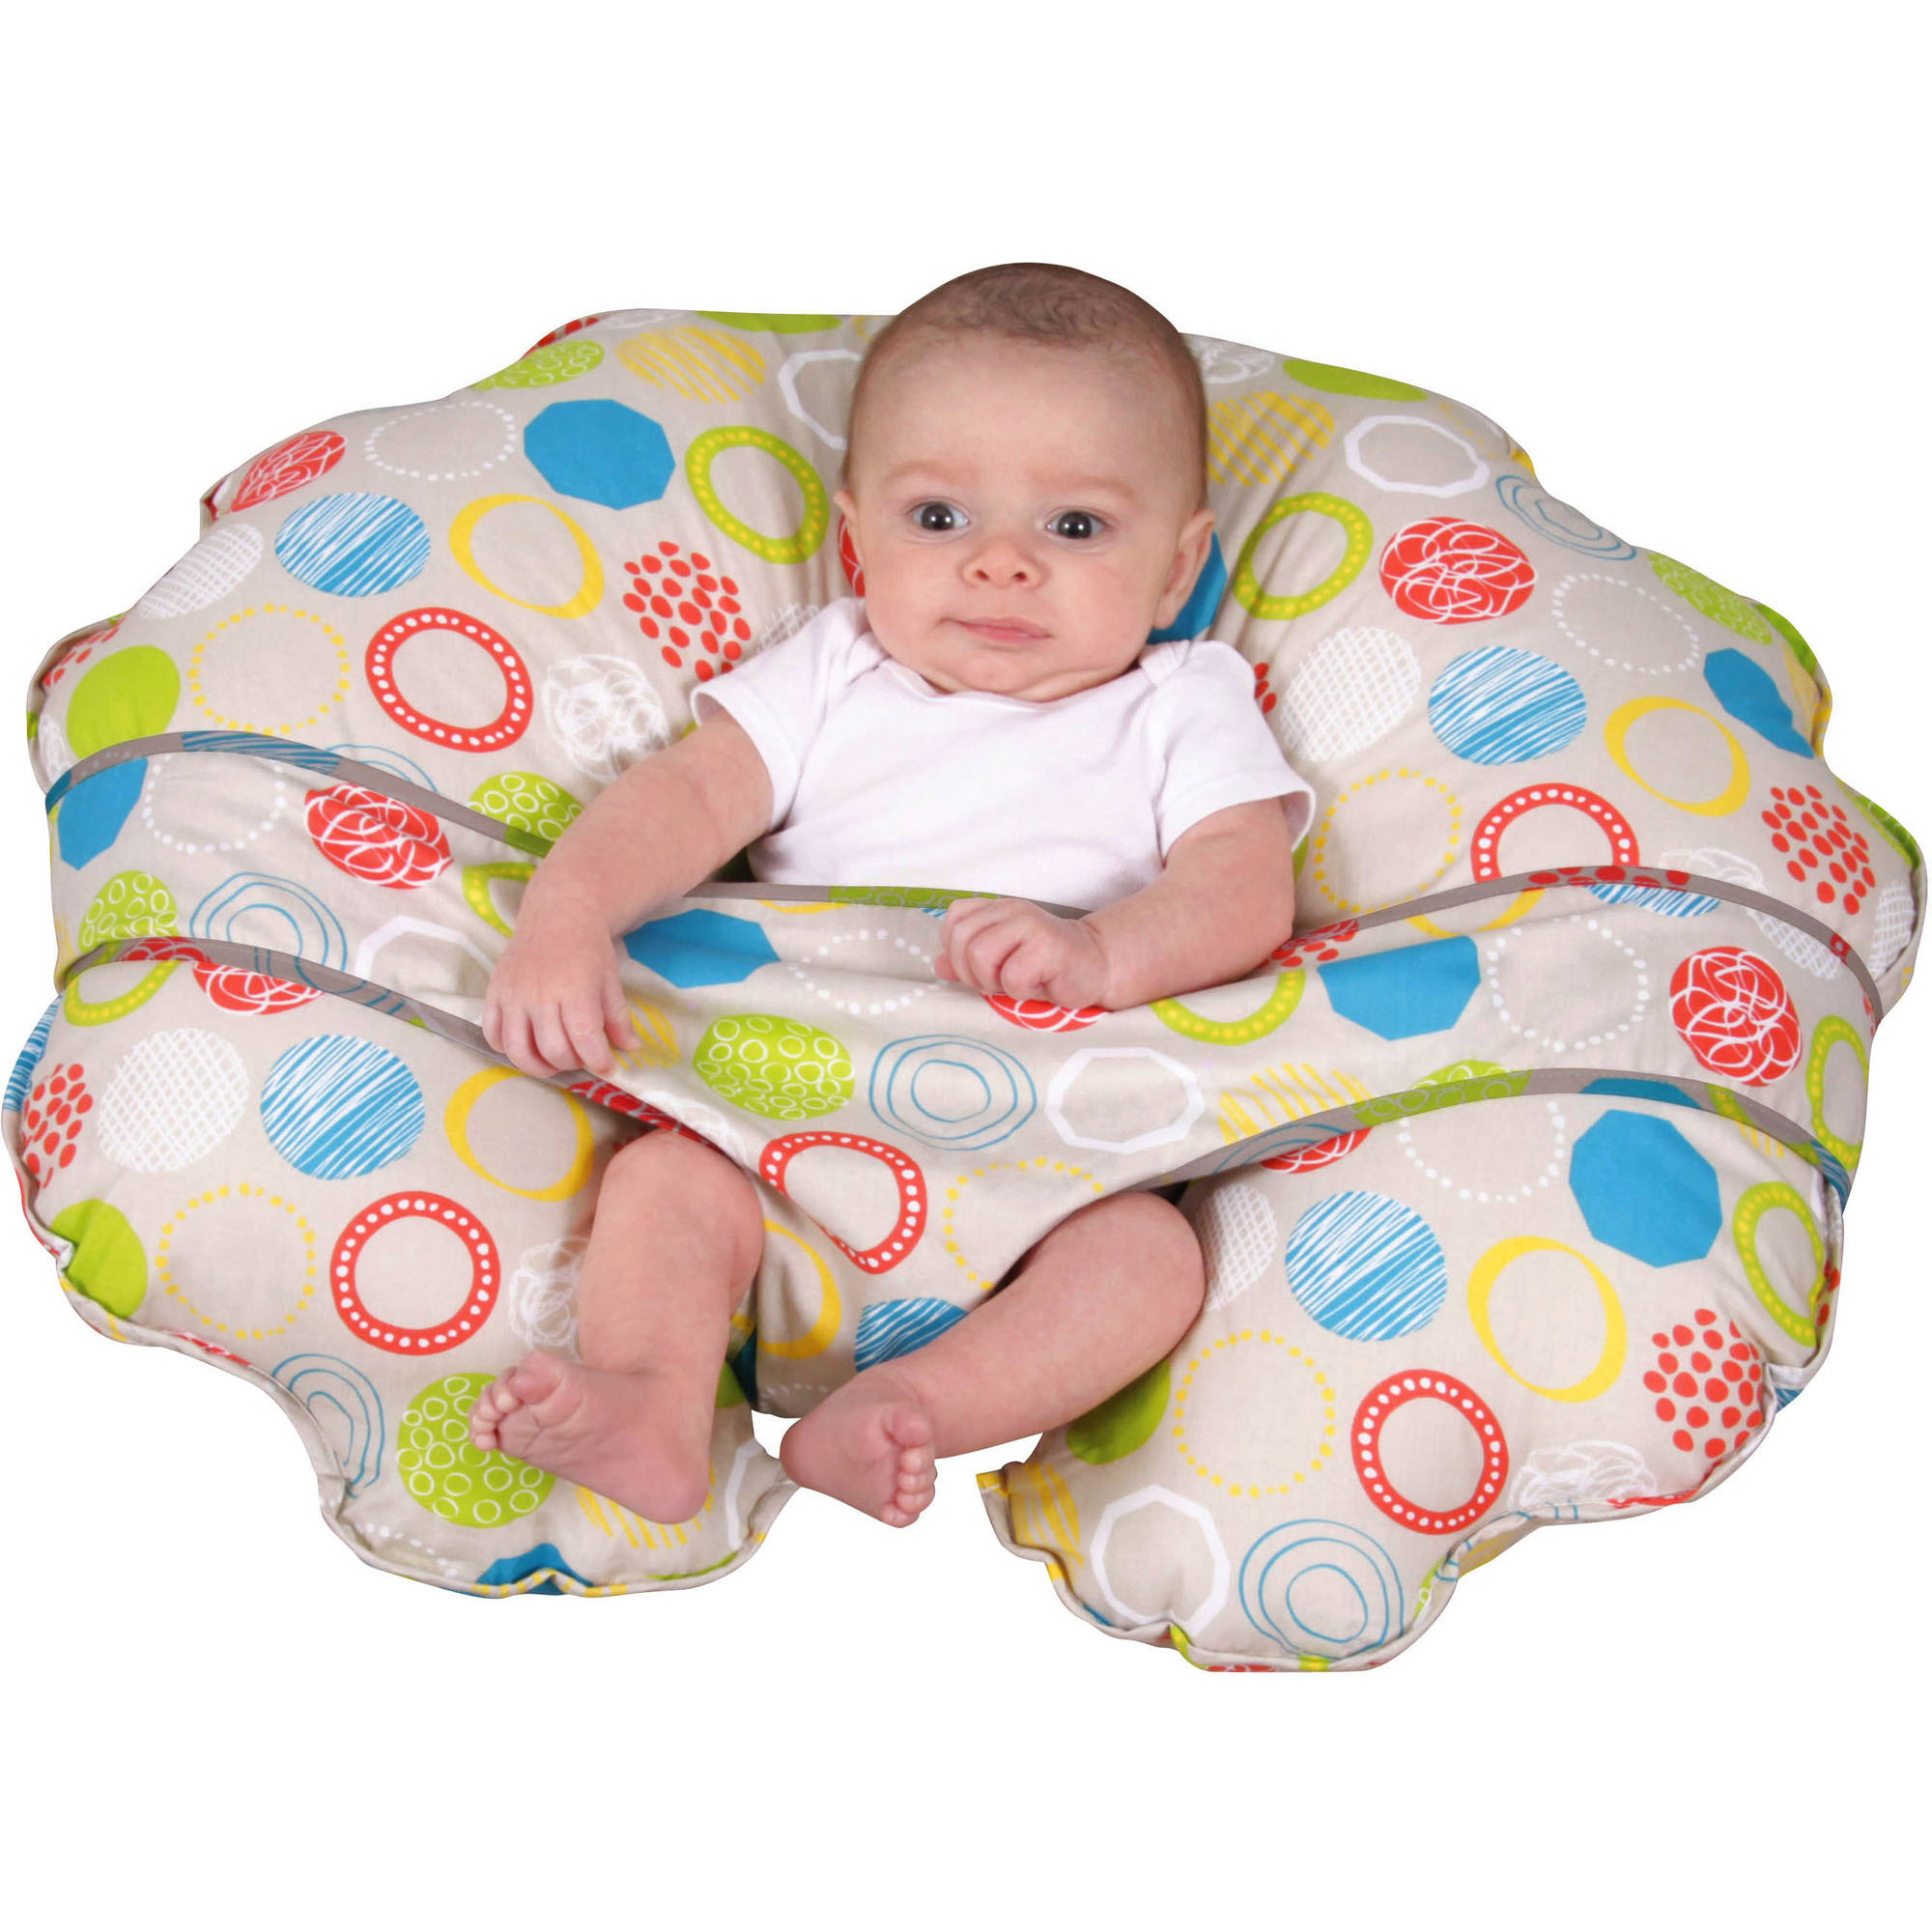 Leachco CuddleU Nursing Pillow and More Whimsy Rounds